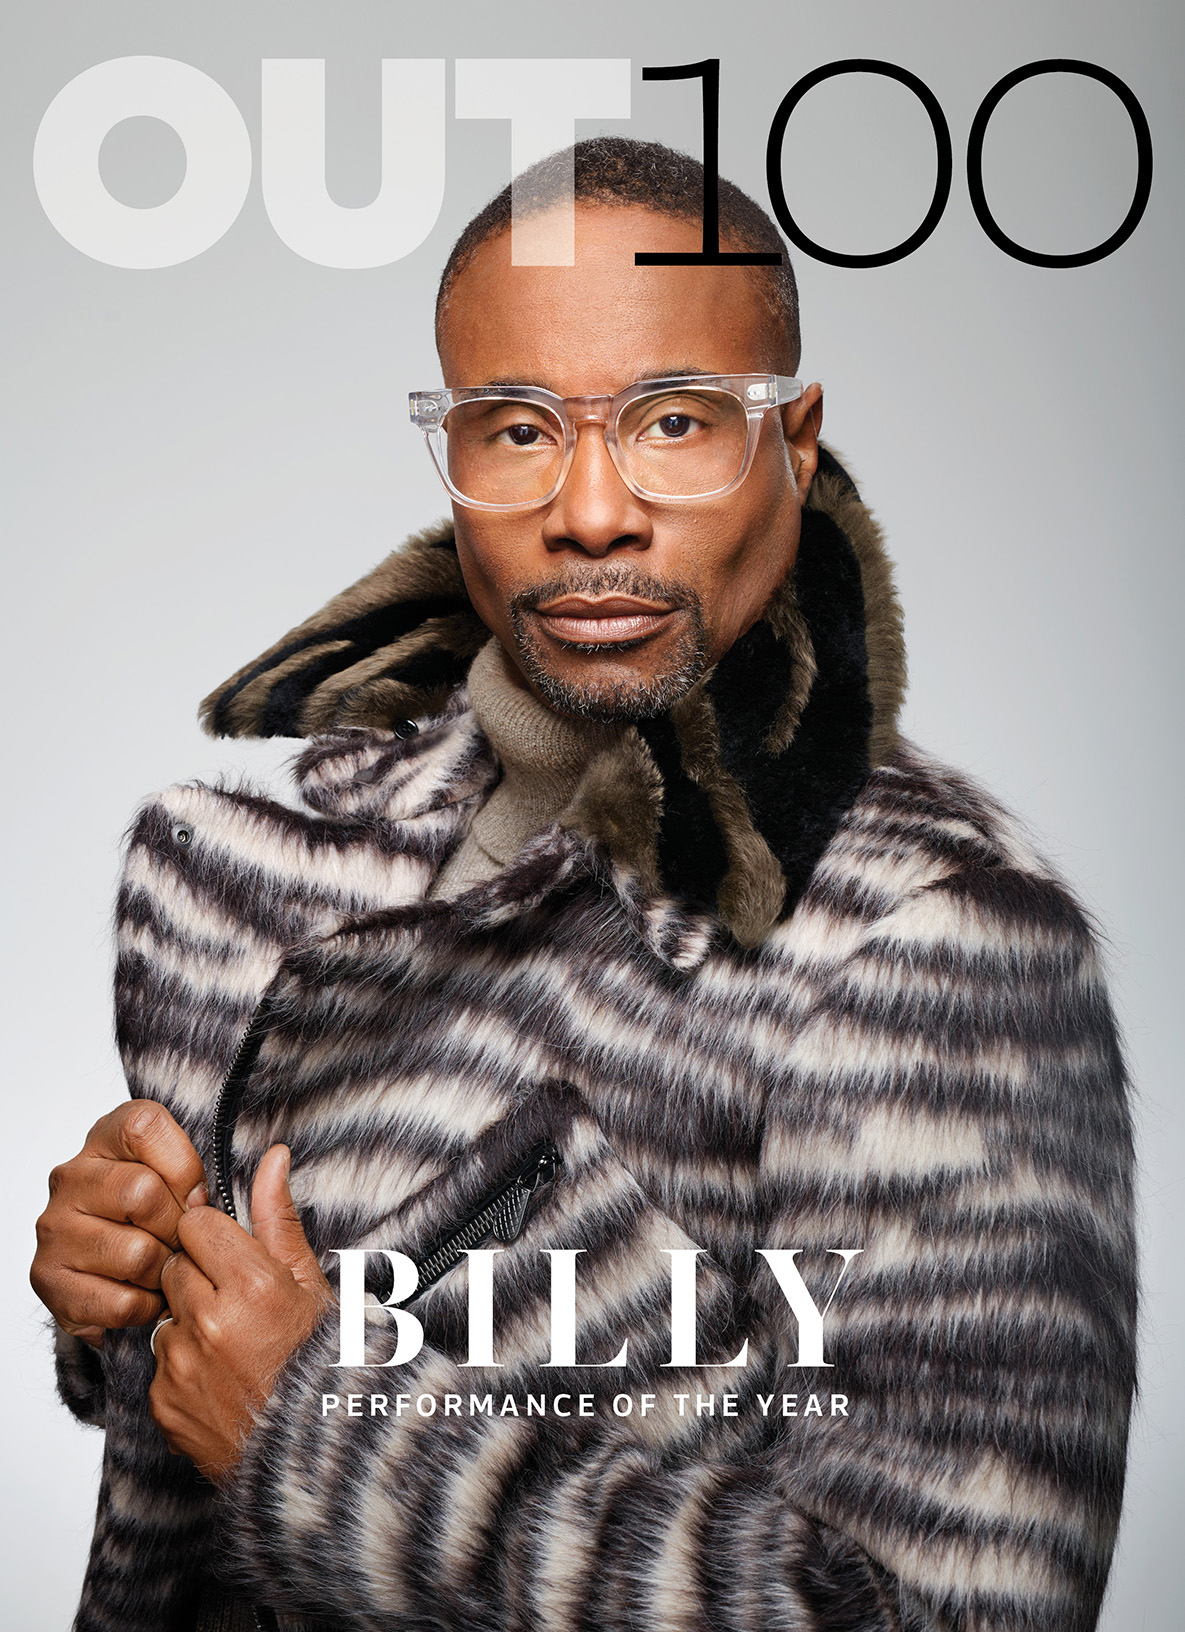 OUT Magazine  / Dec '18 - Jan '19 (OUT100) issue . (Cover 2/4. Billy Porter. Photography by Martin Schoeller)   CLICK THE IMAGE ABOVE TO VIEW THE ENTIRE ISSUE.